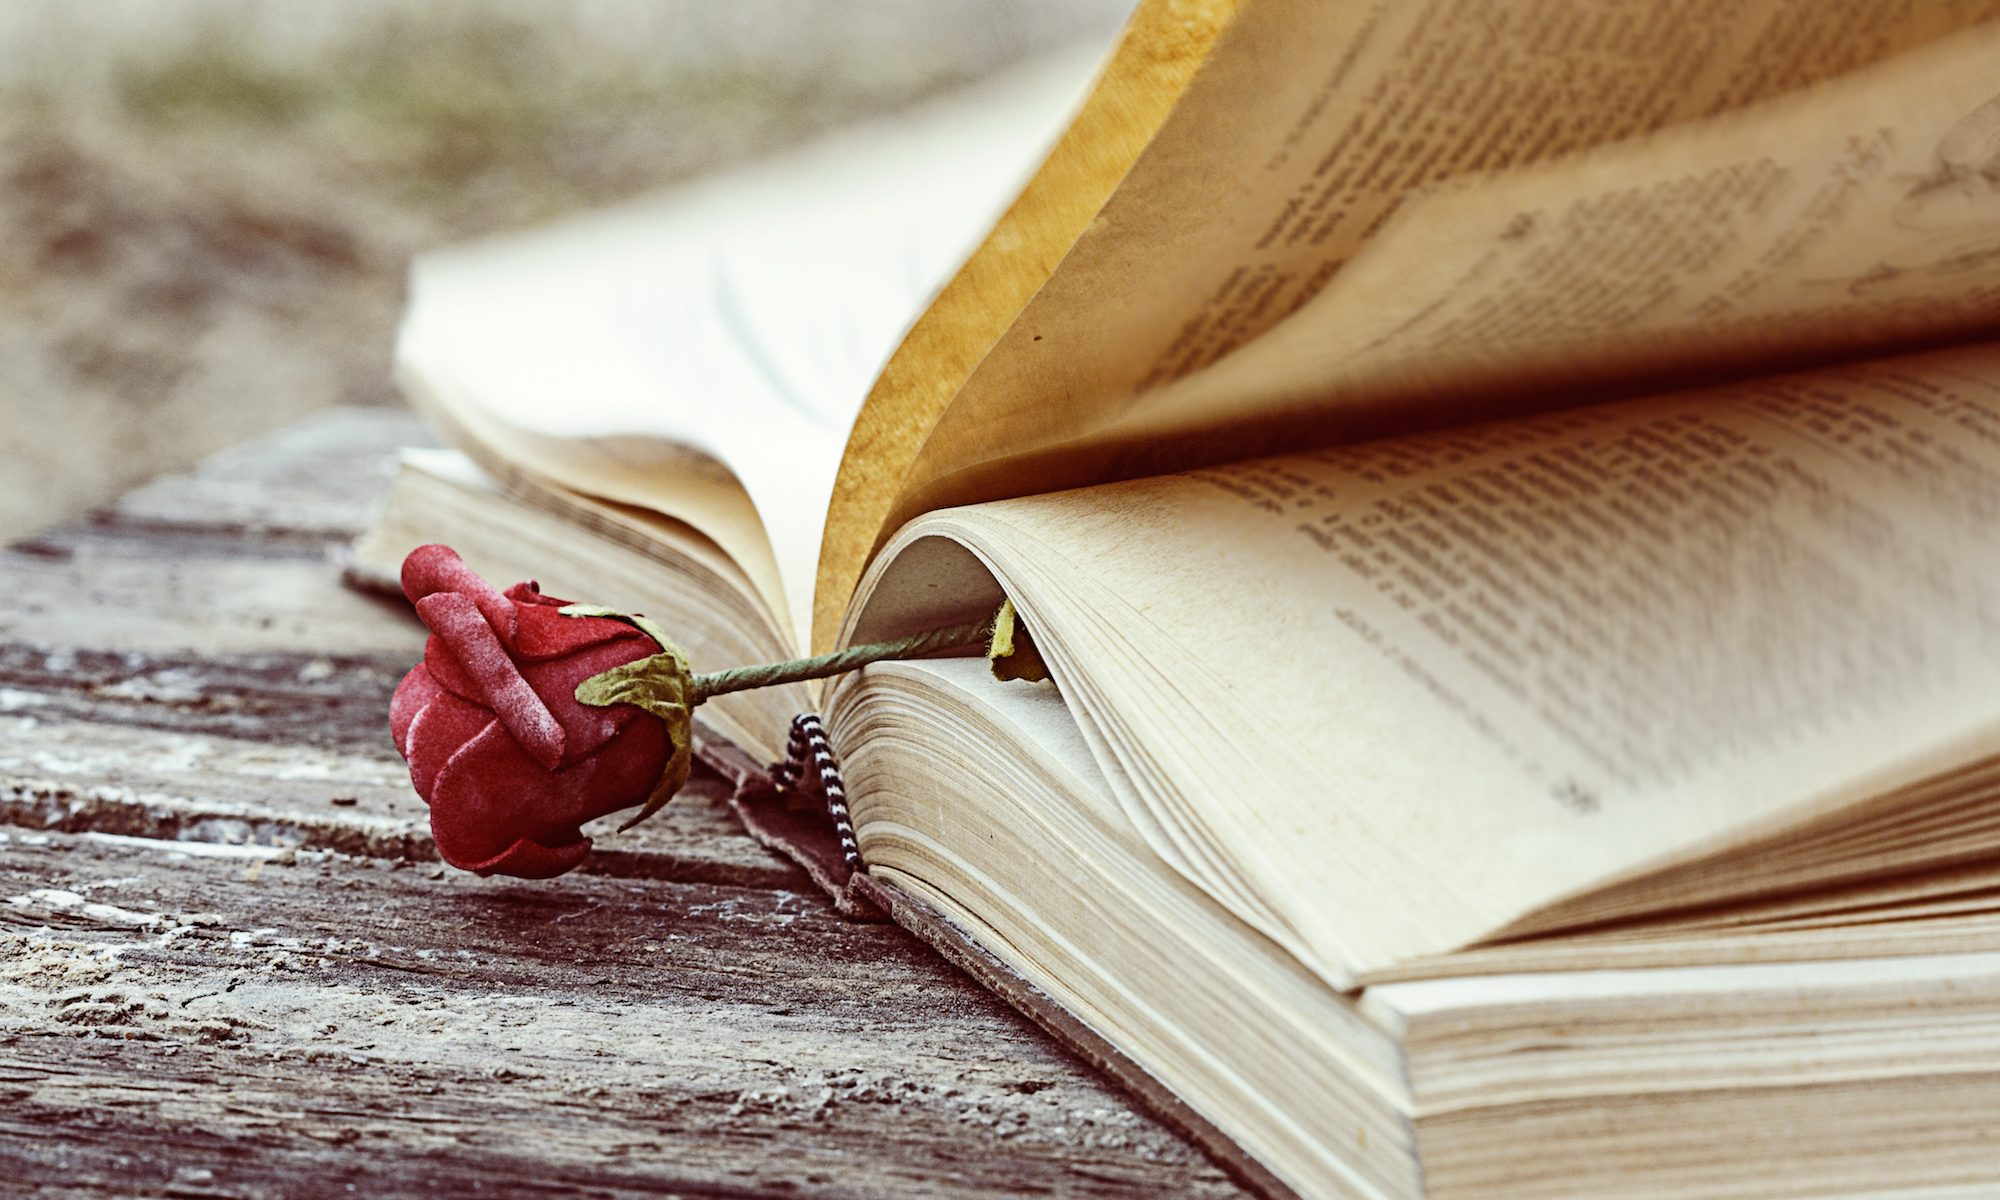 old book open on wood desk with rose tucked into pages